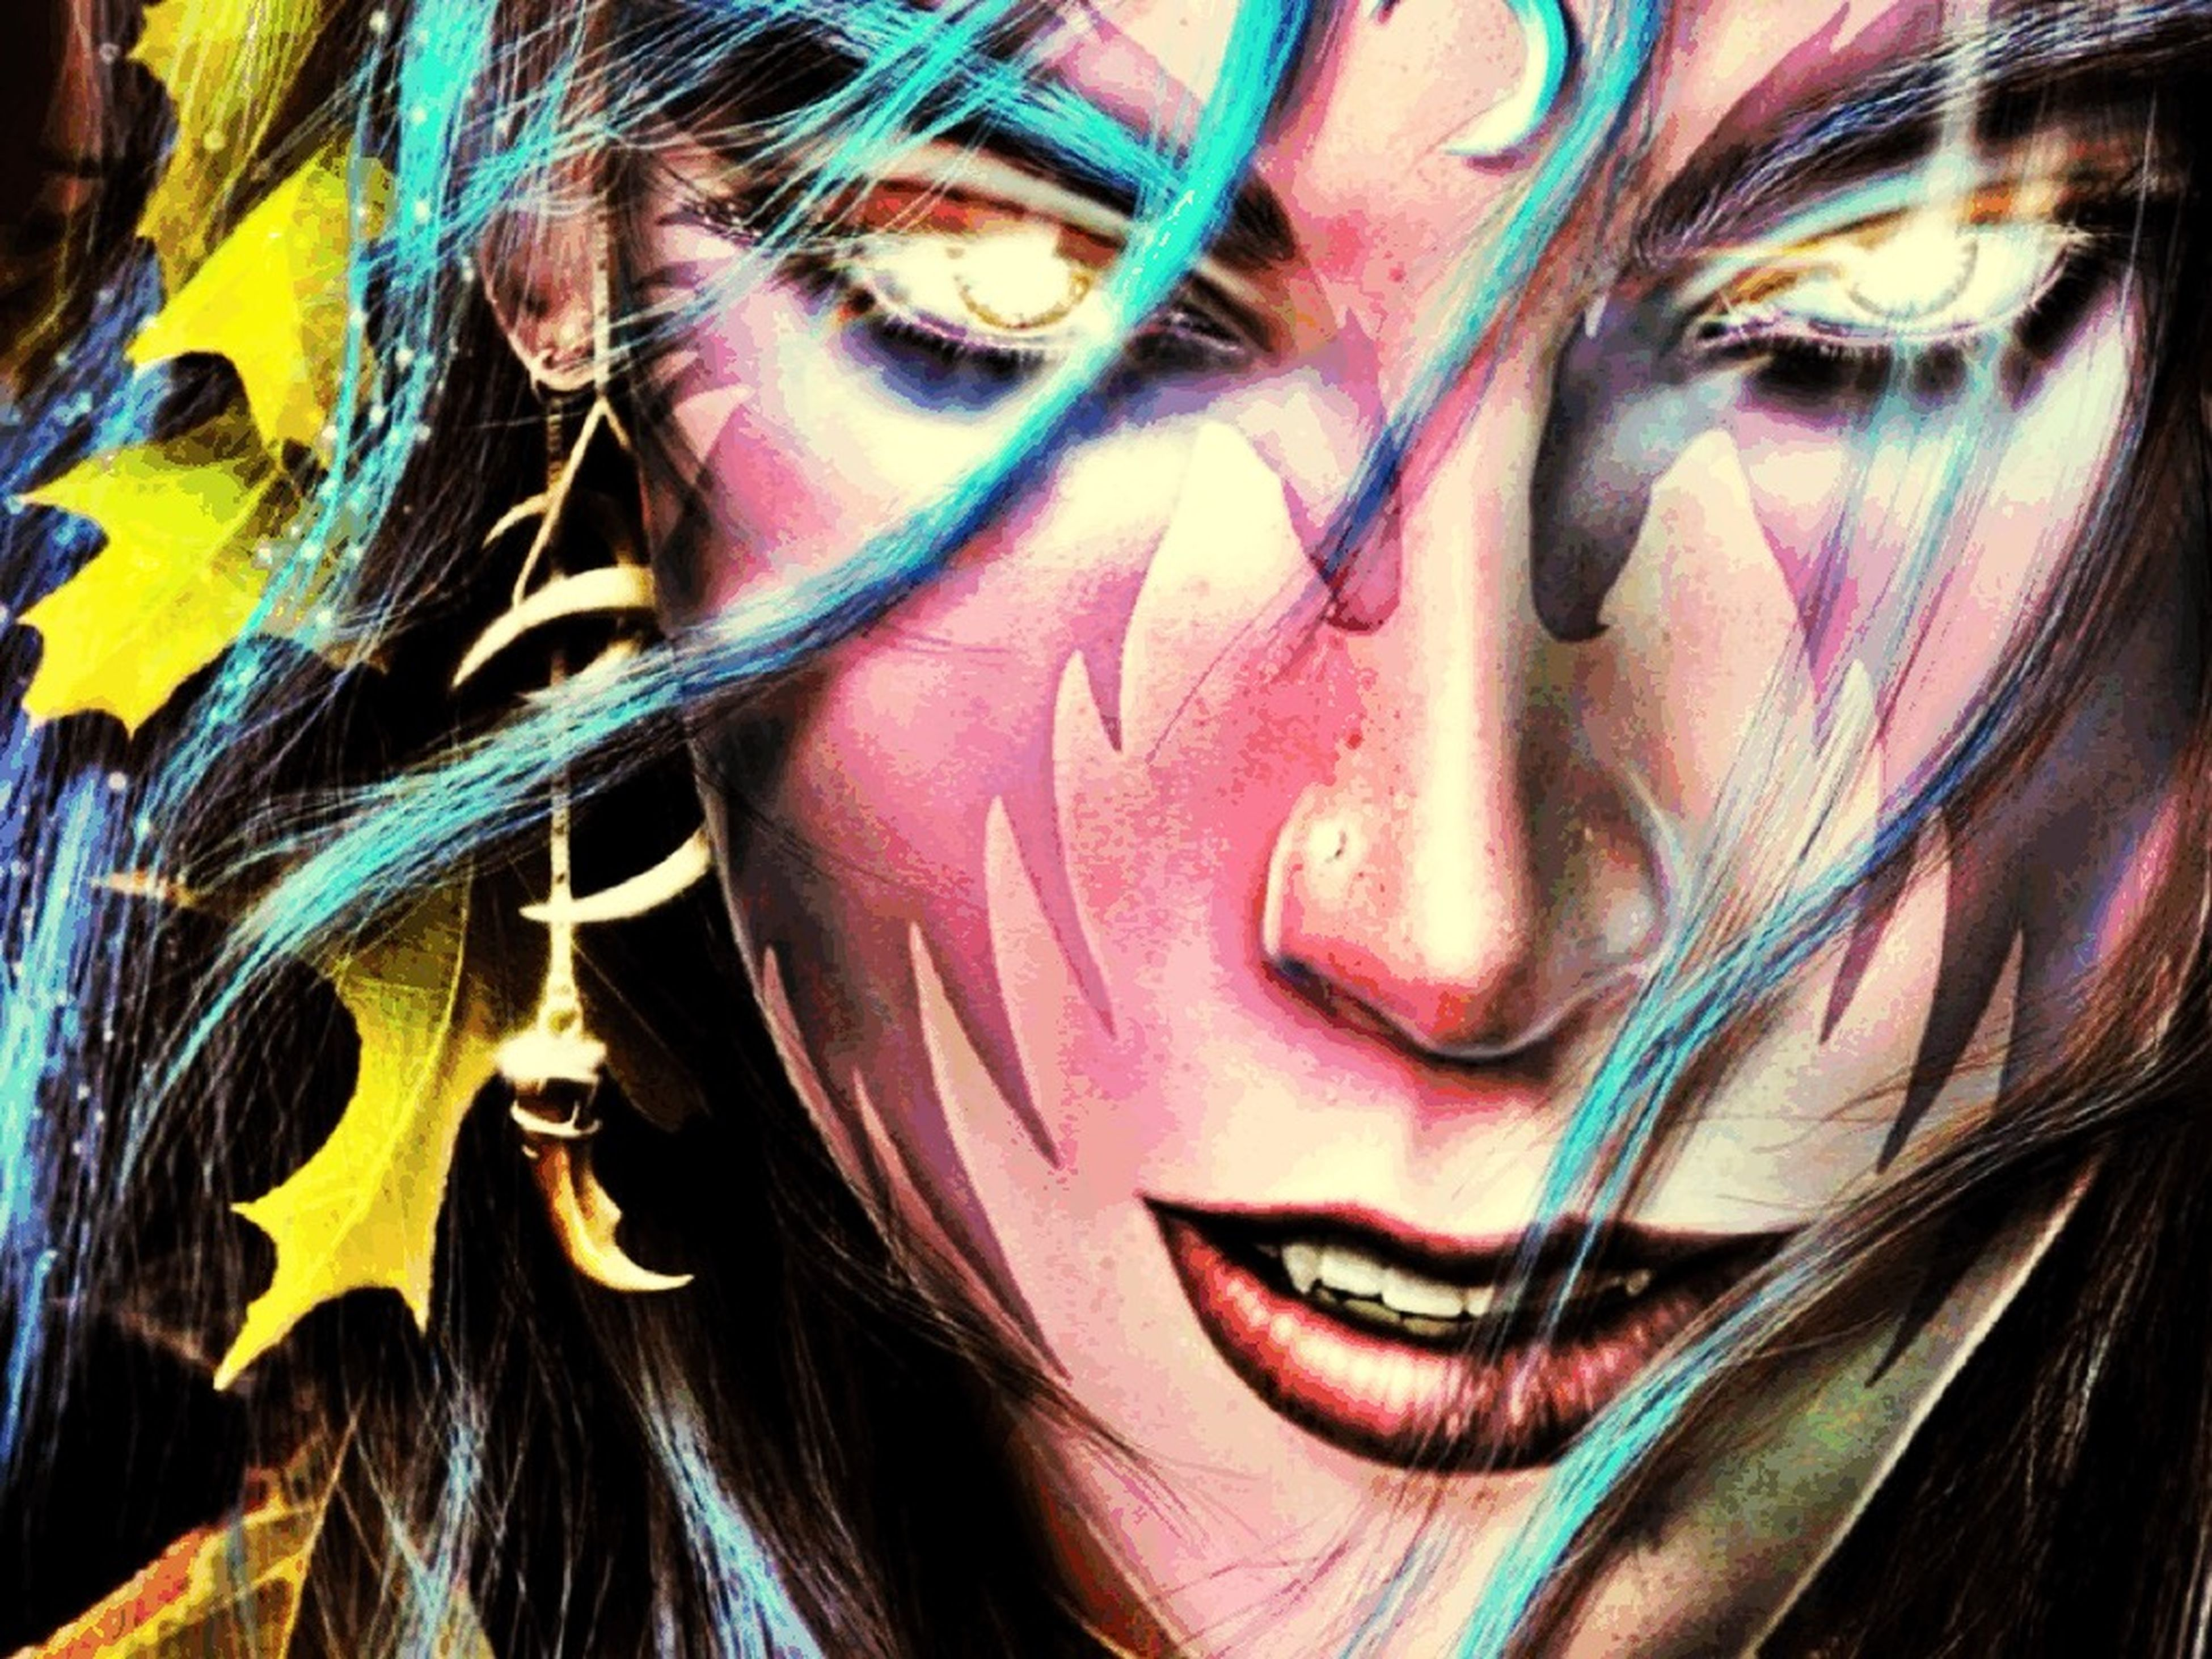 art, creativity, art and craft, young adult, young women, front view, indoors, portrait, looking at camera, person, close-up, multi colored, graffiti, human representation, wall - building feature, painting, long hair